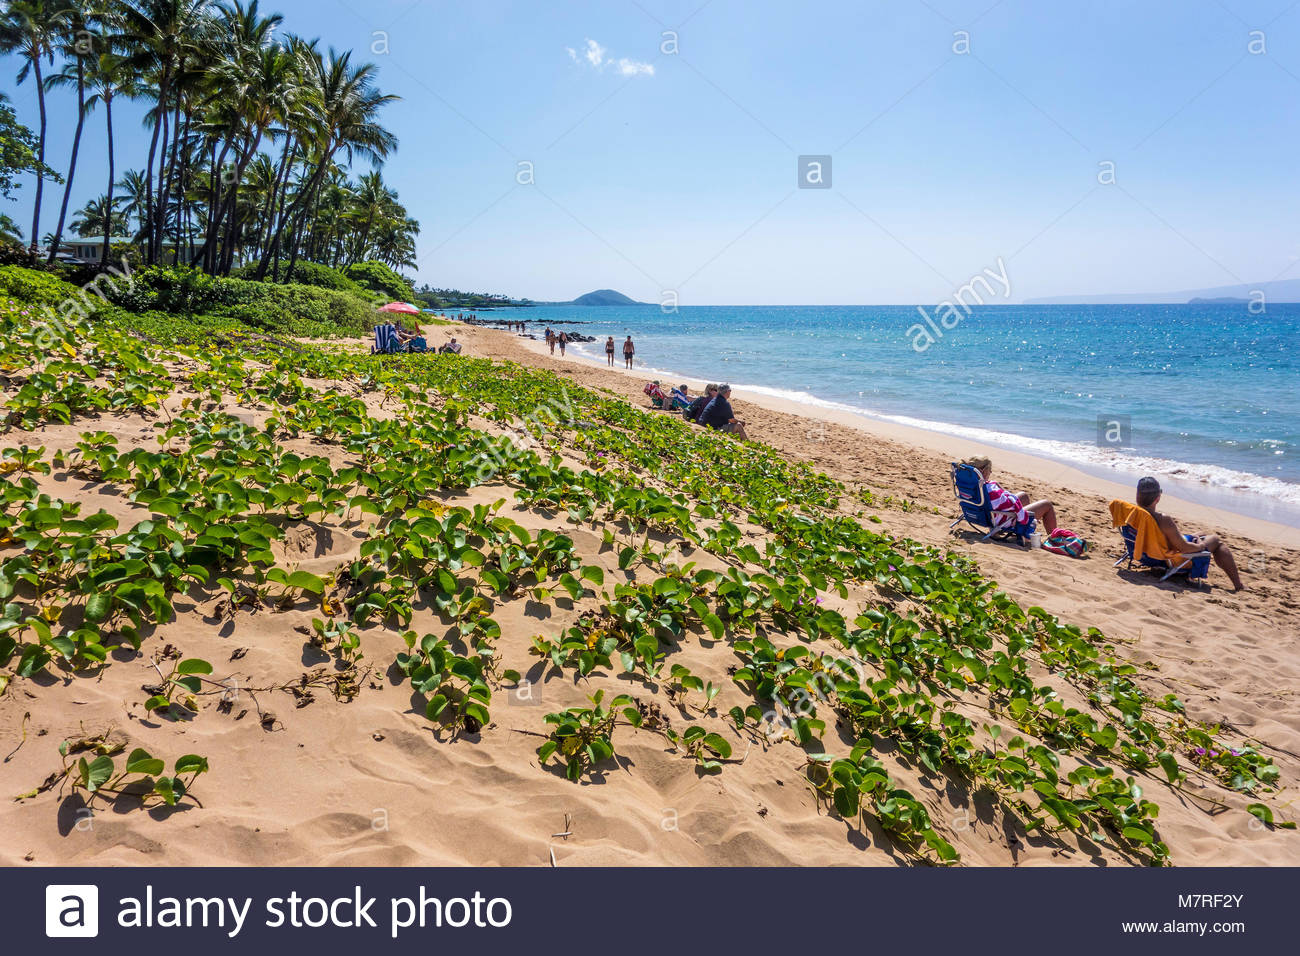 Keawakapu Beach a palm lined sandy Polynesian beach with gentle surf on the Pacific island of Maui in the state - Stock Image